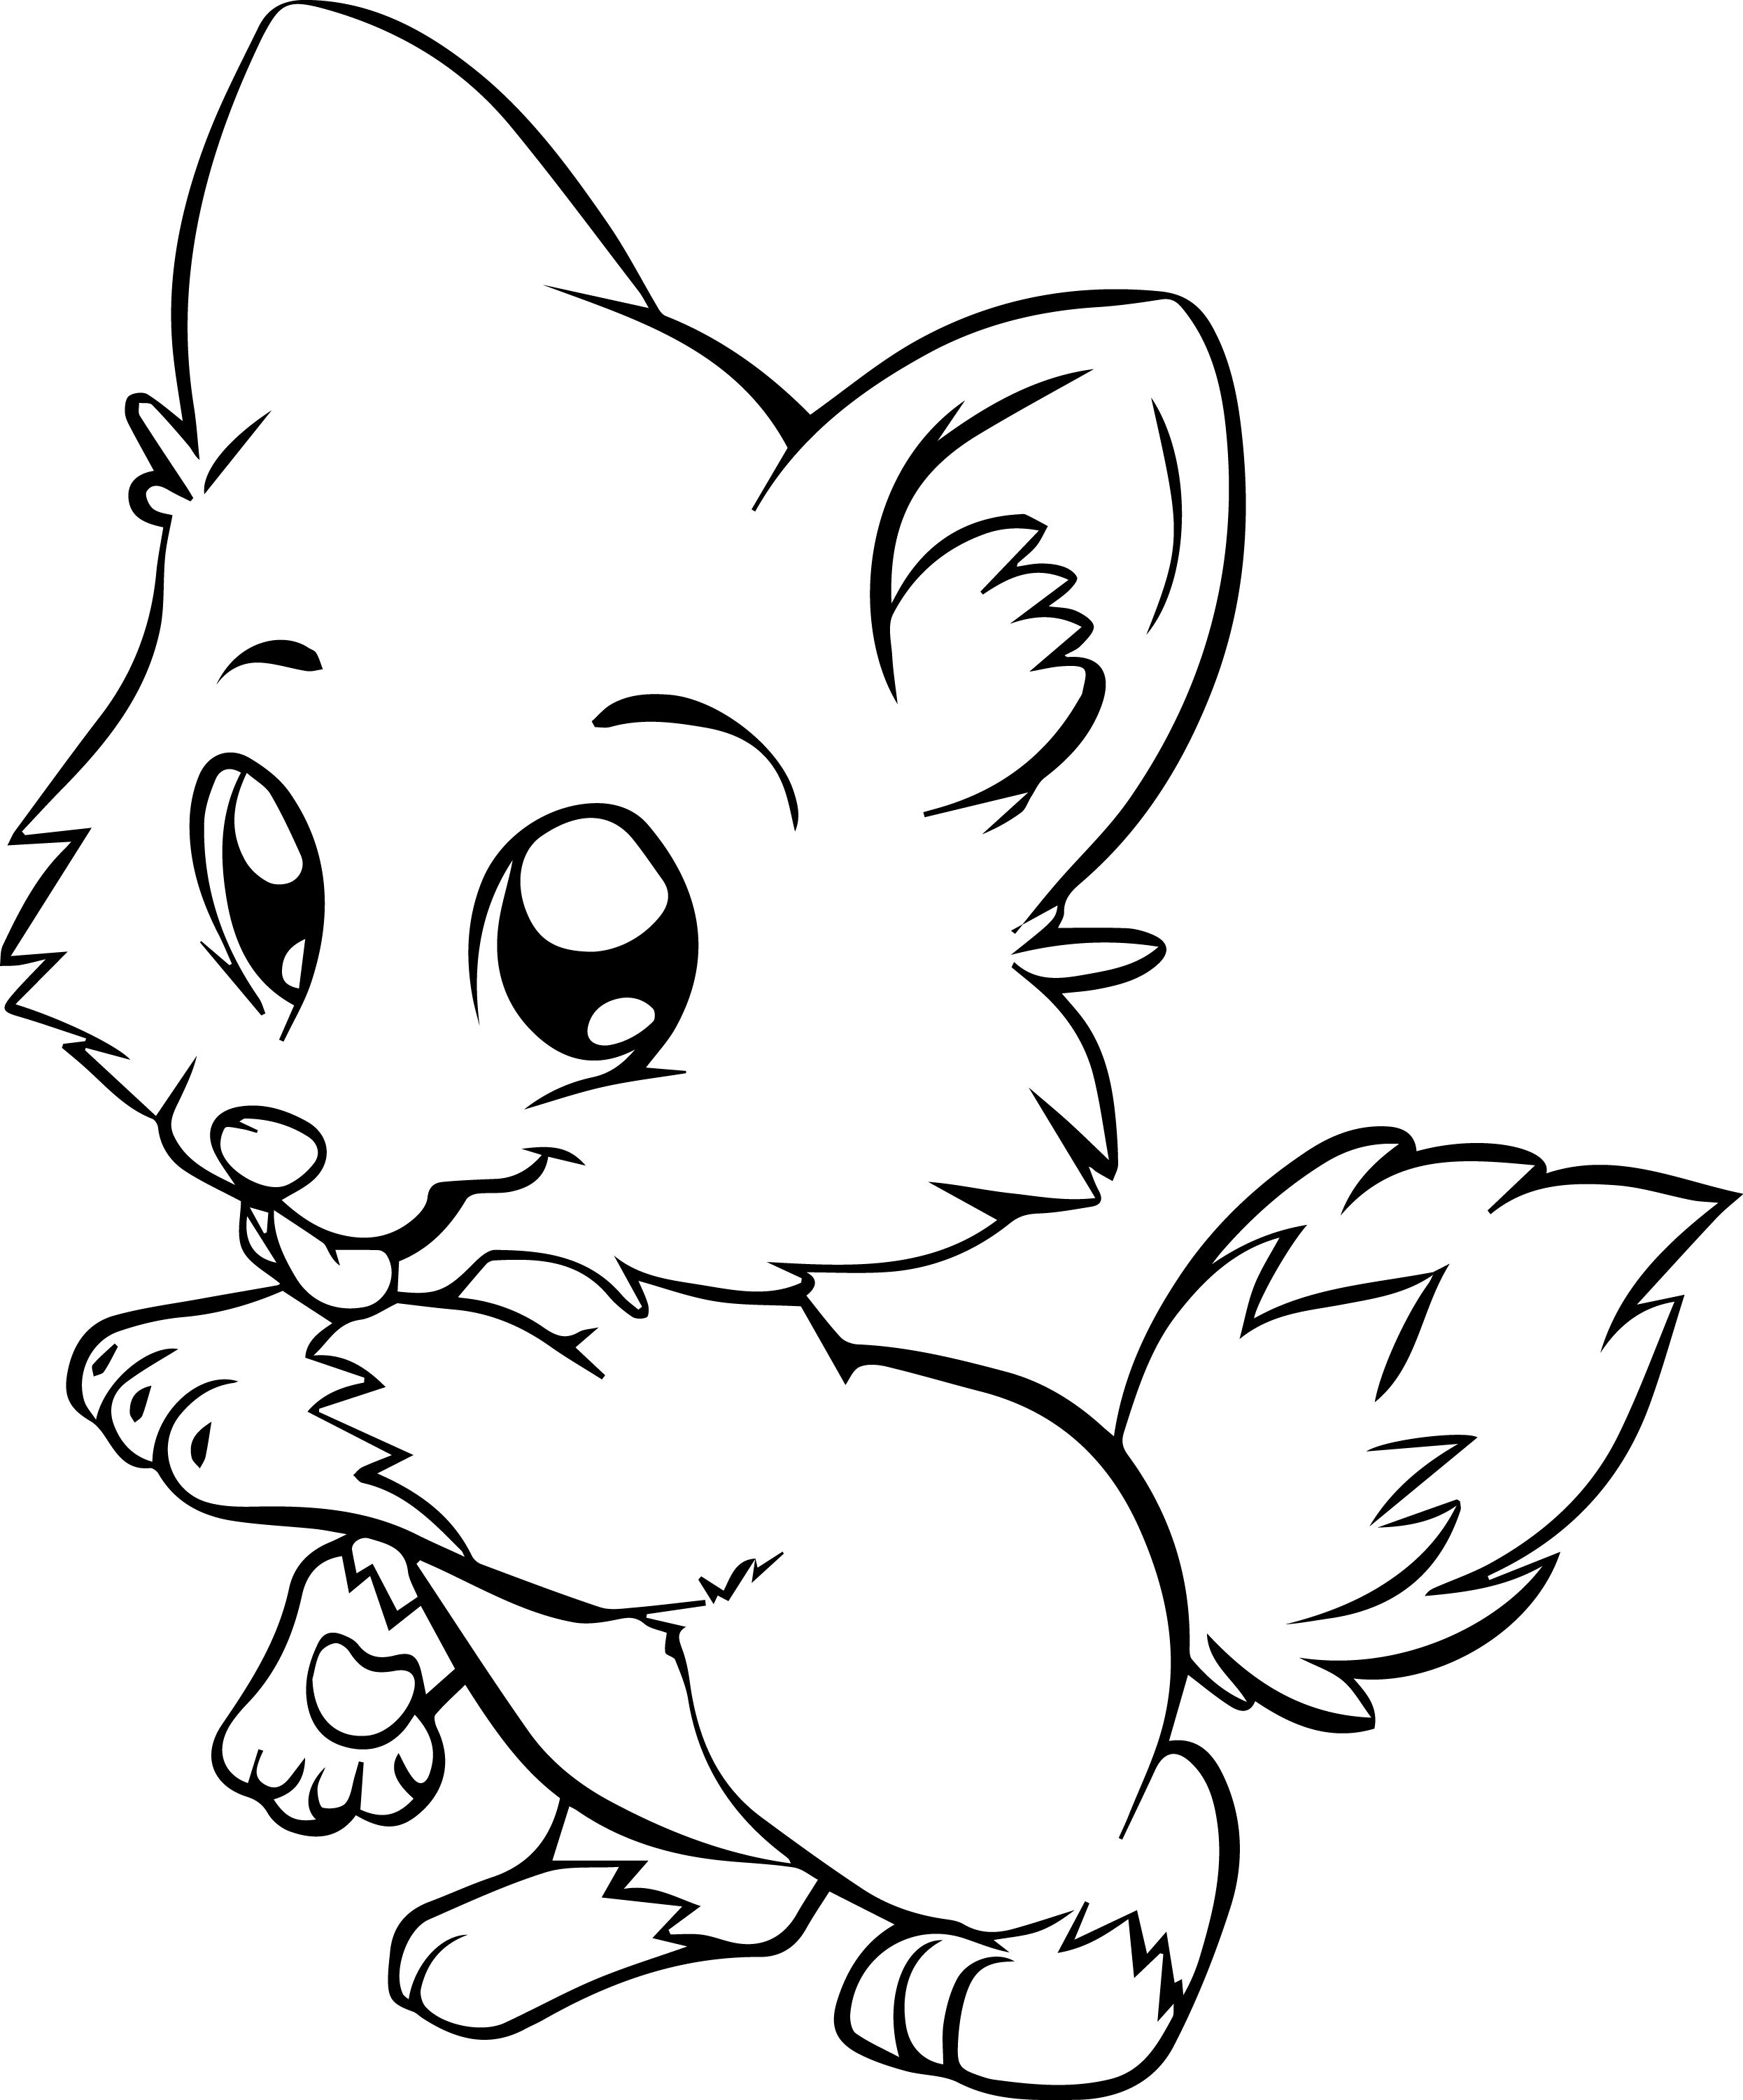 2491x3002 Blerapy Dog Cute Coloring Page Mcoloring Coloring Pages Of Cute